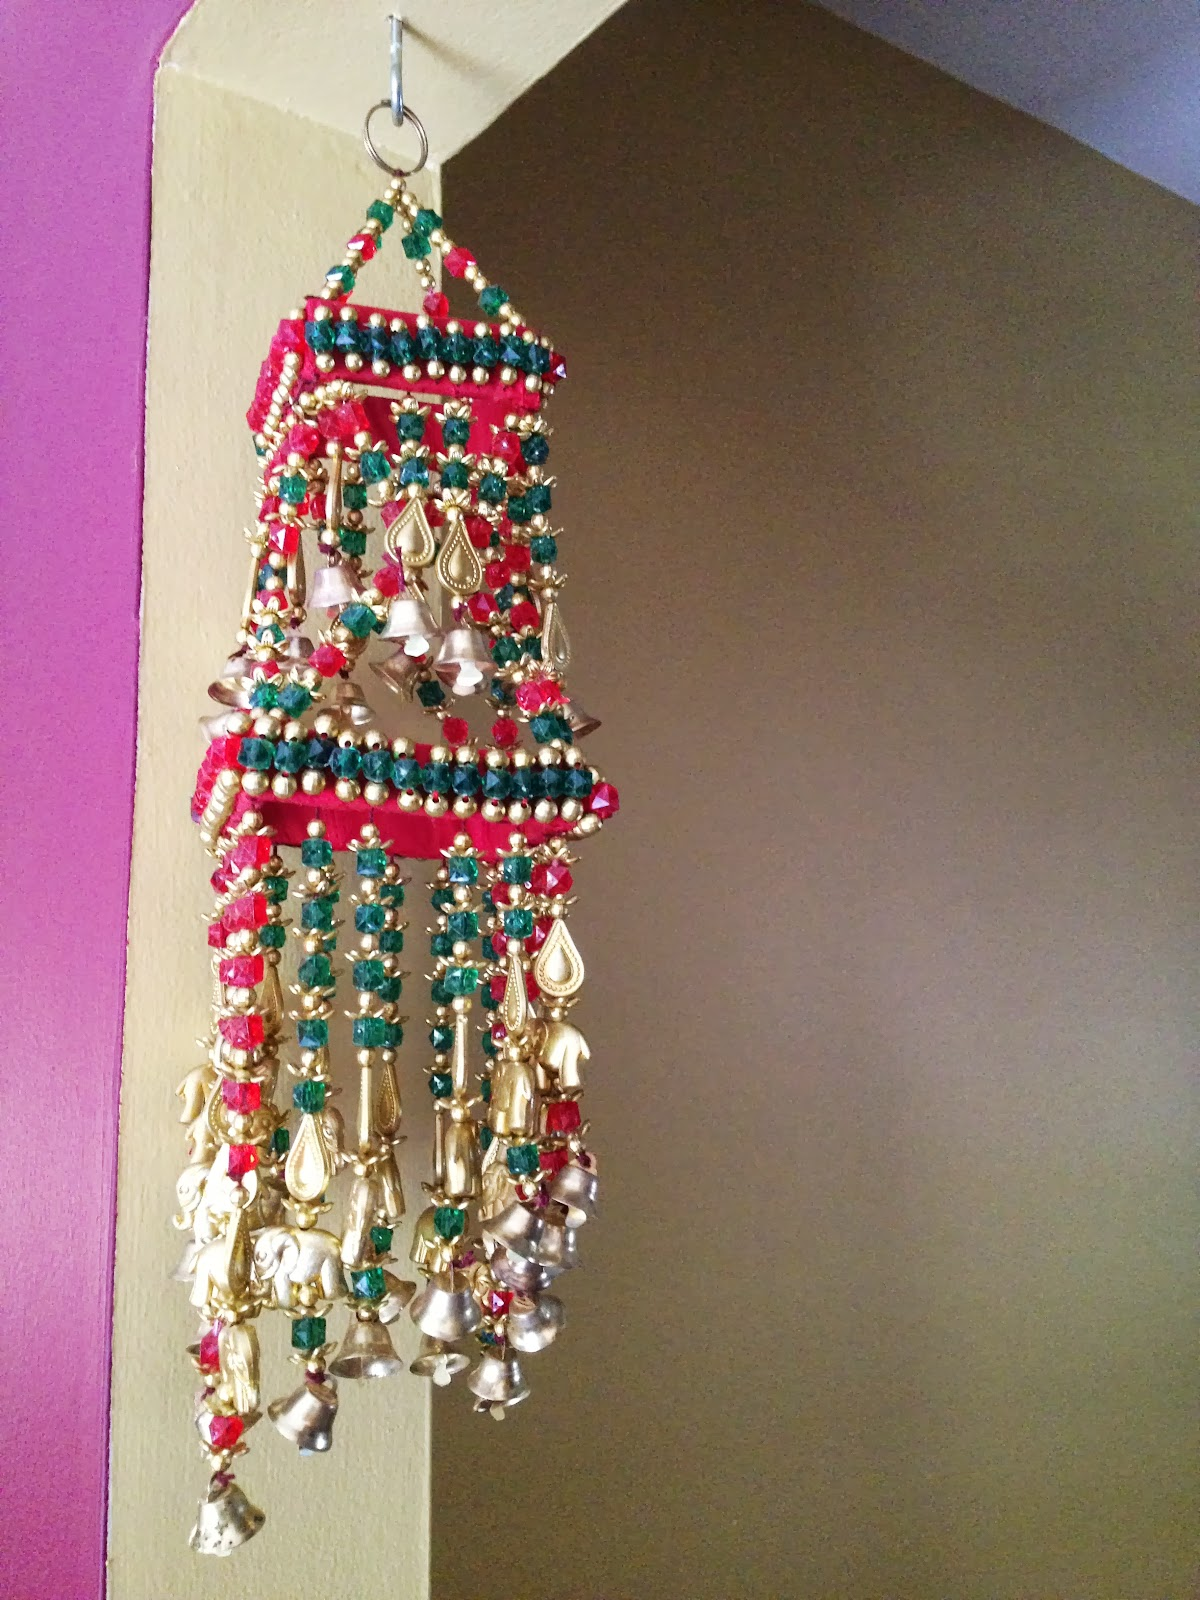 Indian Traditional Dresses and Wall Designs: Rajasthani wall Hangings ...